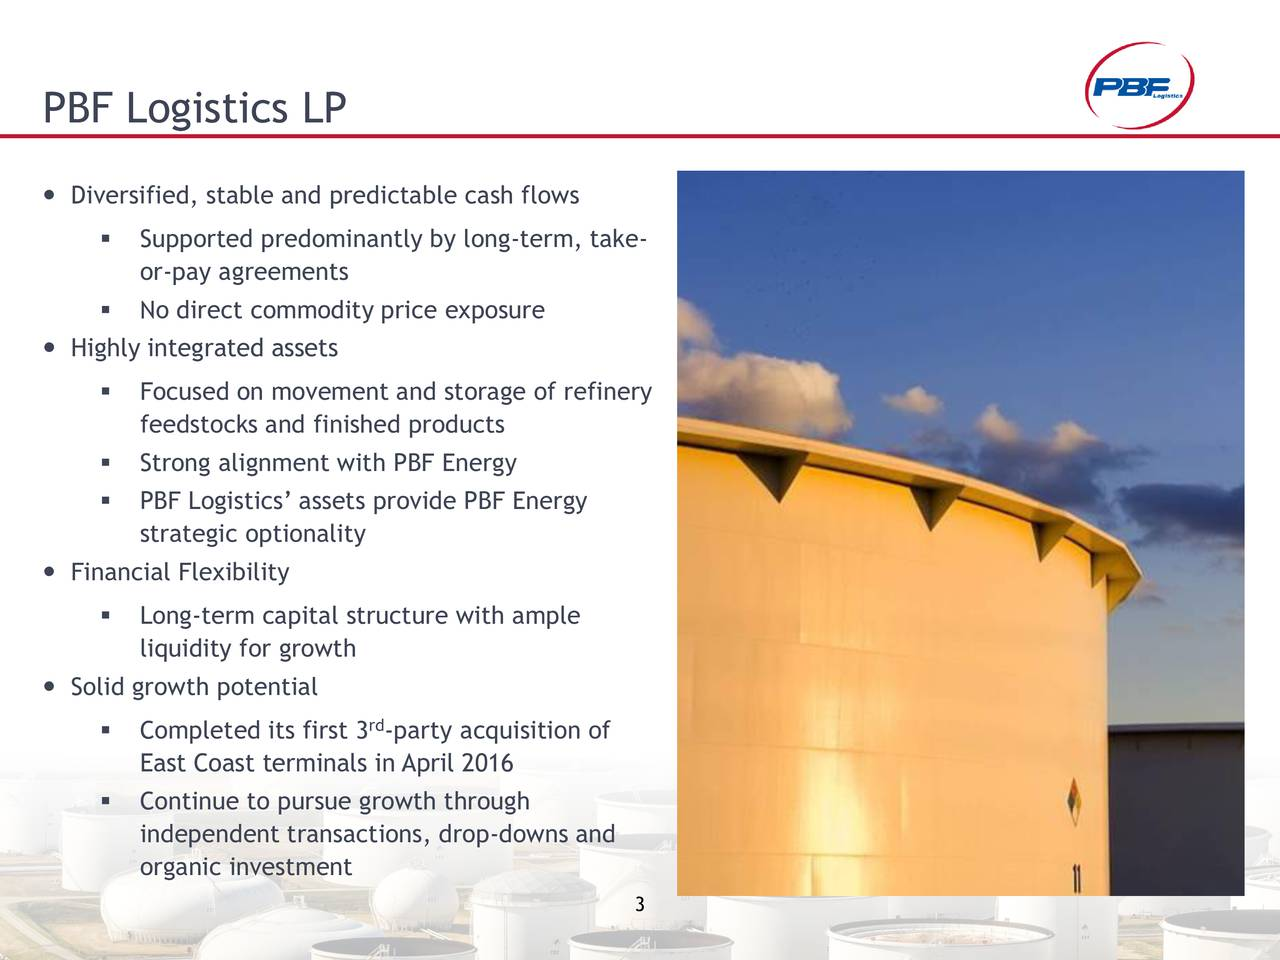 Diversified, stable and predictable cash flows Supported predominantly by long-term, take- or-pay agreements No direct commodity price exposure Highly integrated assets Focused on movement and storage of refinery feedstocks and finished products Strong alignment with PBF Energy PBF Logistics assets provide PBF Energy strategic optionality Financial Flexibility Long-term capital structure with ample liquidity for growth Solid growth potential Completed its first 3 -party acquisition of East Coast terminals in April 2016 Continue to pursue growth through independent transactions, drop-downs and organic investment 3